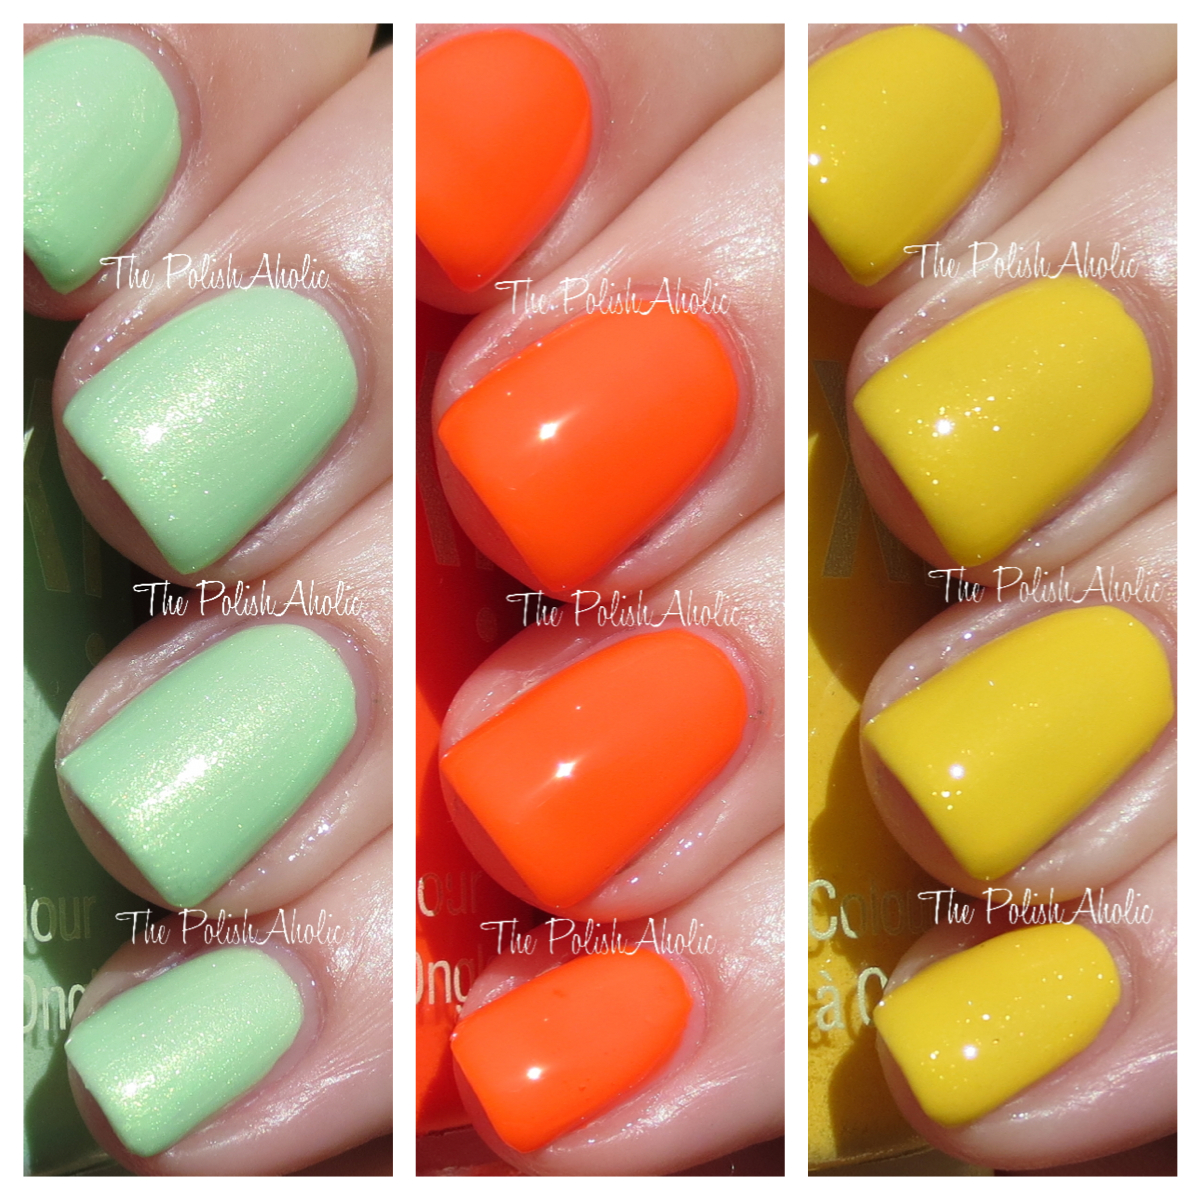 The PolishAholic: Pixi Summer 2014 Nail Polish Swatches & Review